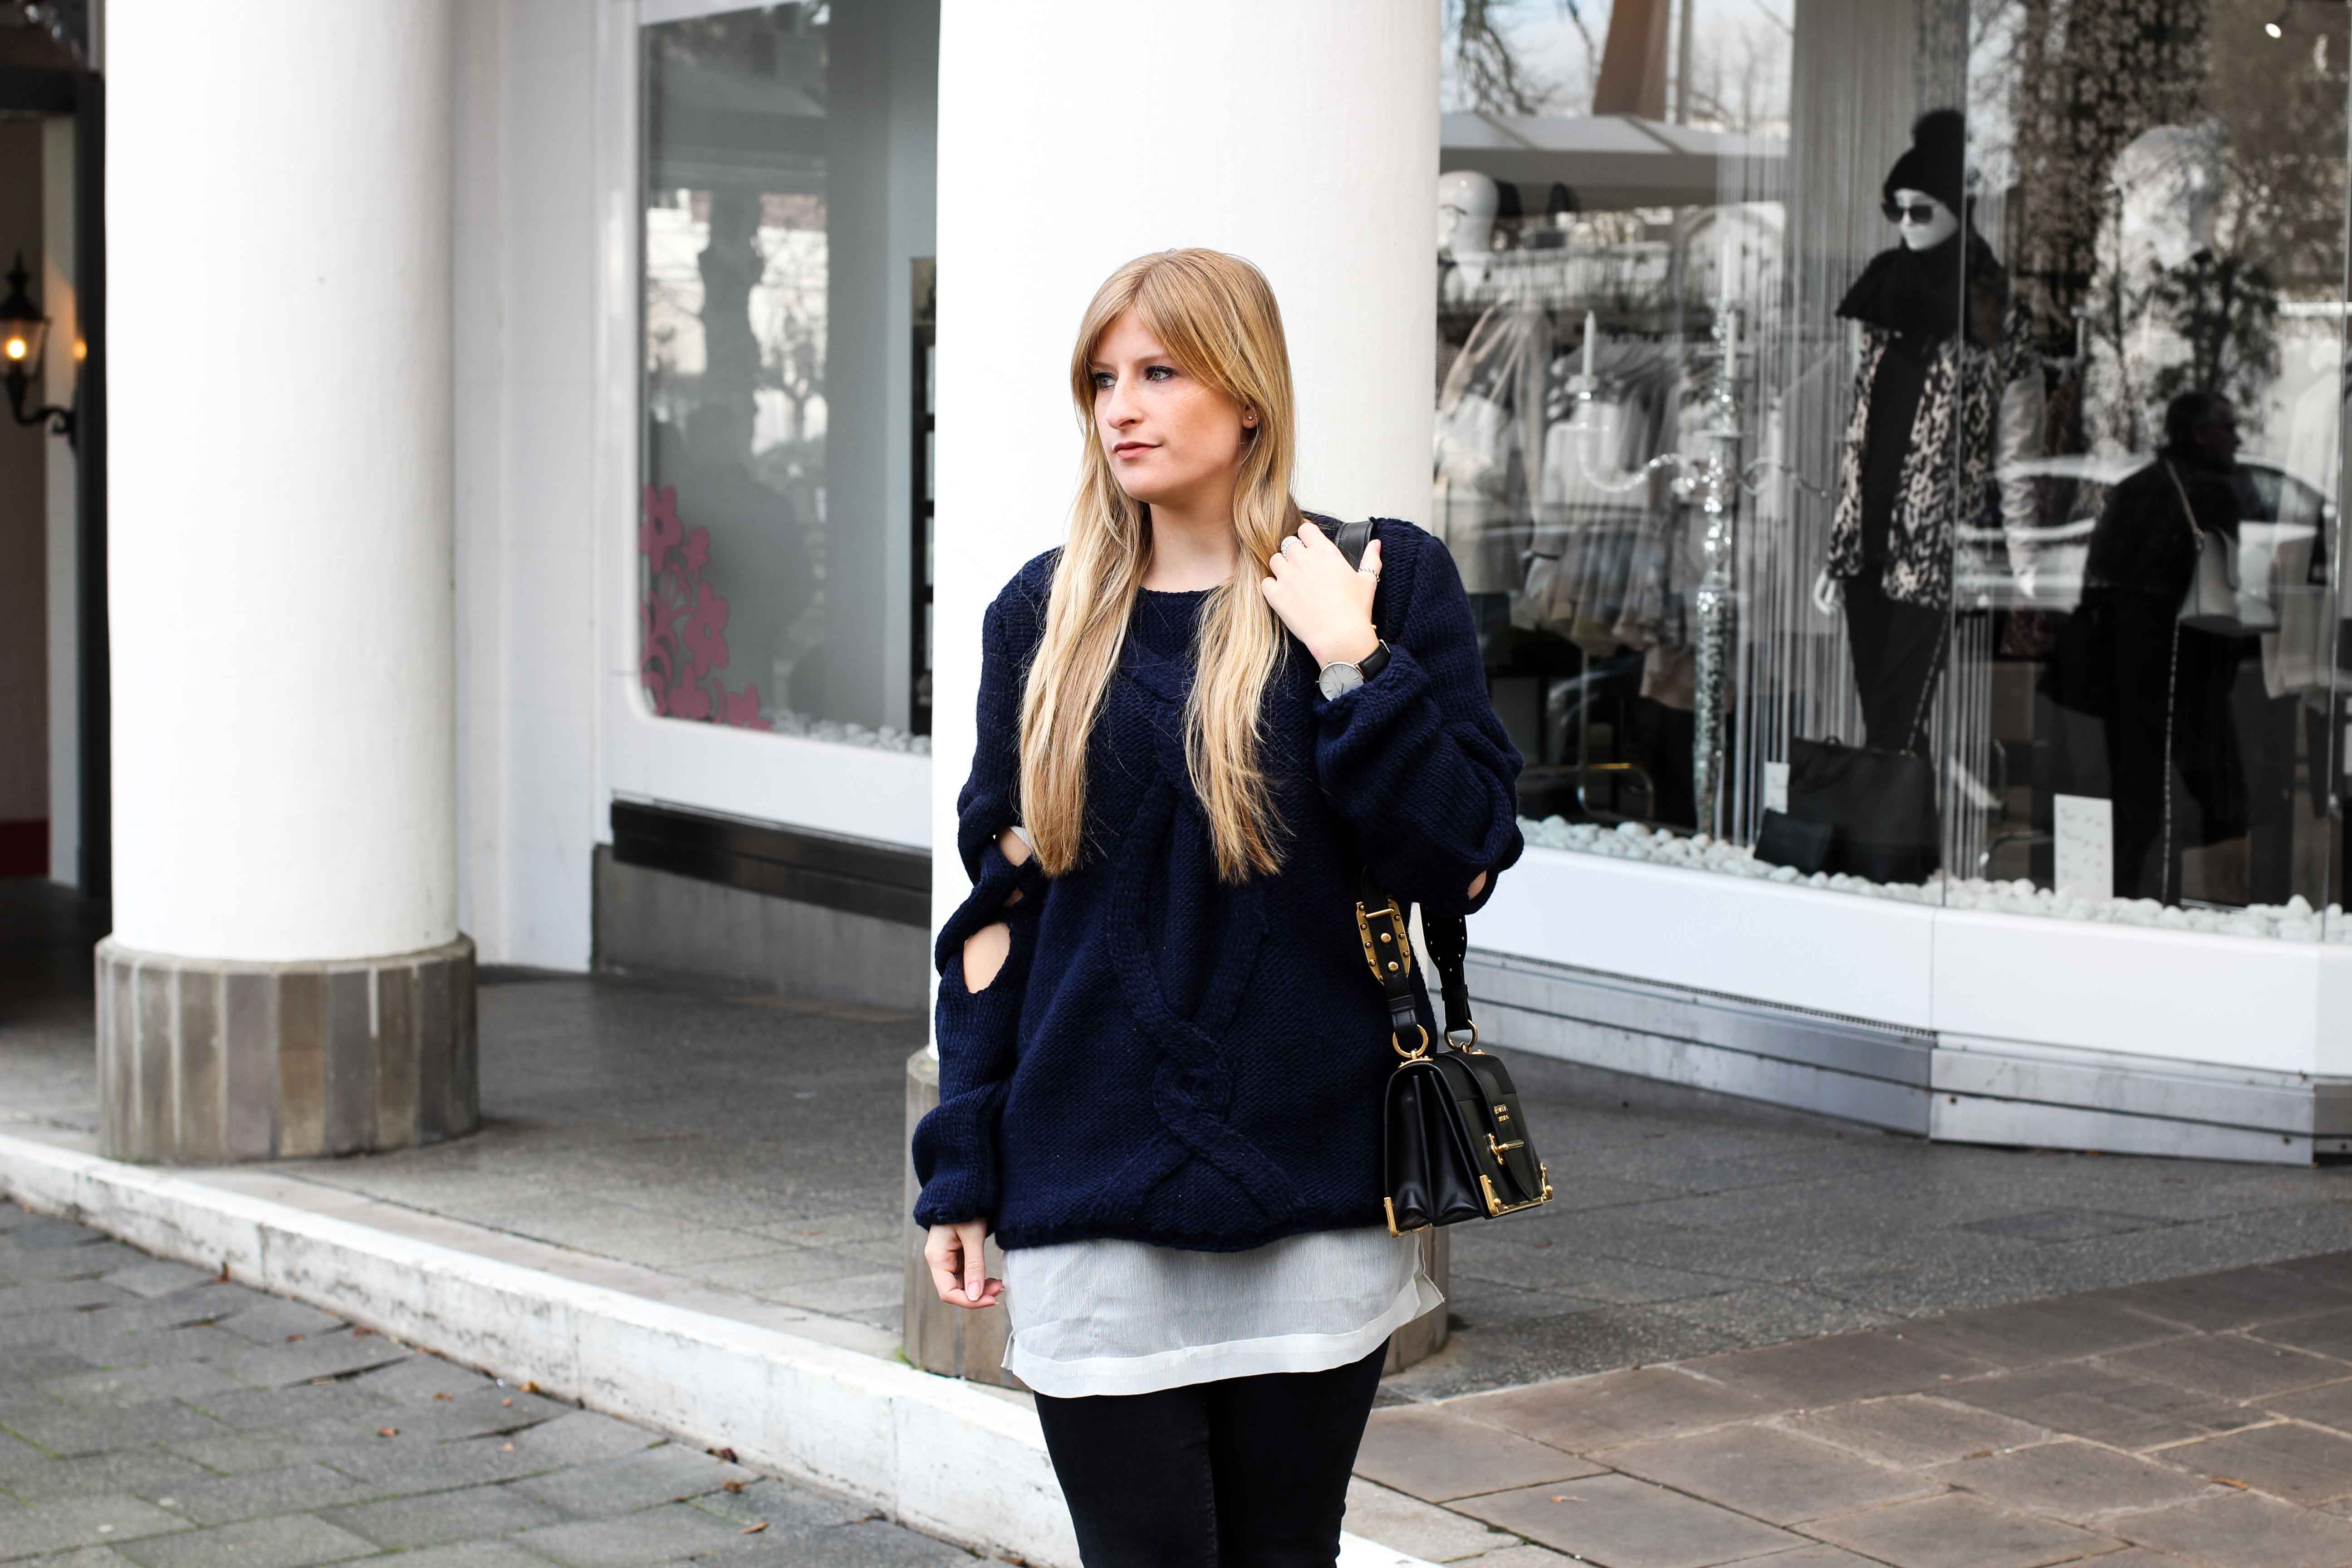 Streetstyle Wollpullover mit Cut-Outs Zopfmuster Prada Cahier Bag Modeblogger 4